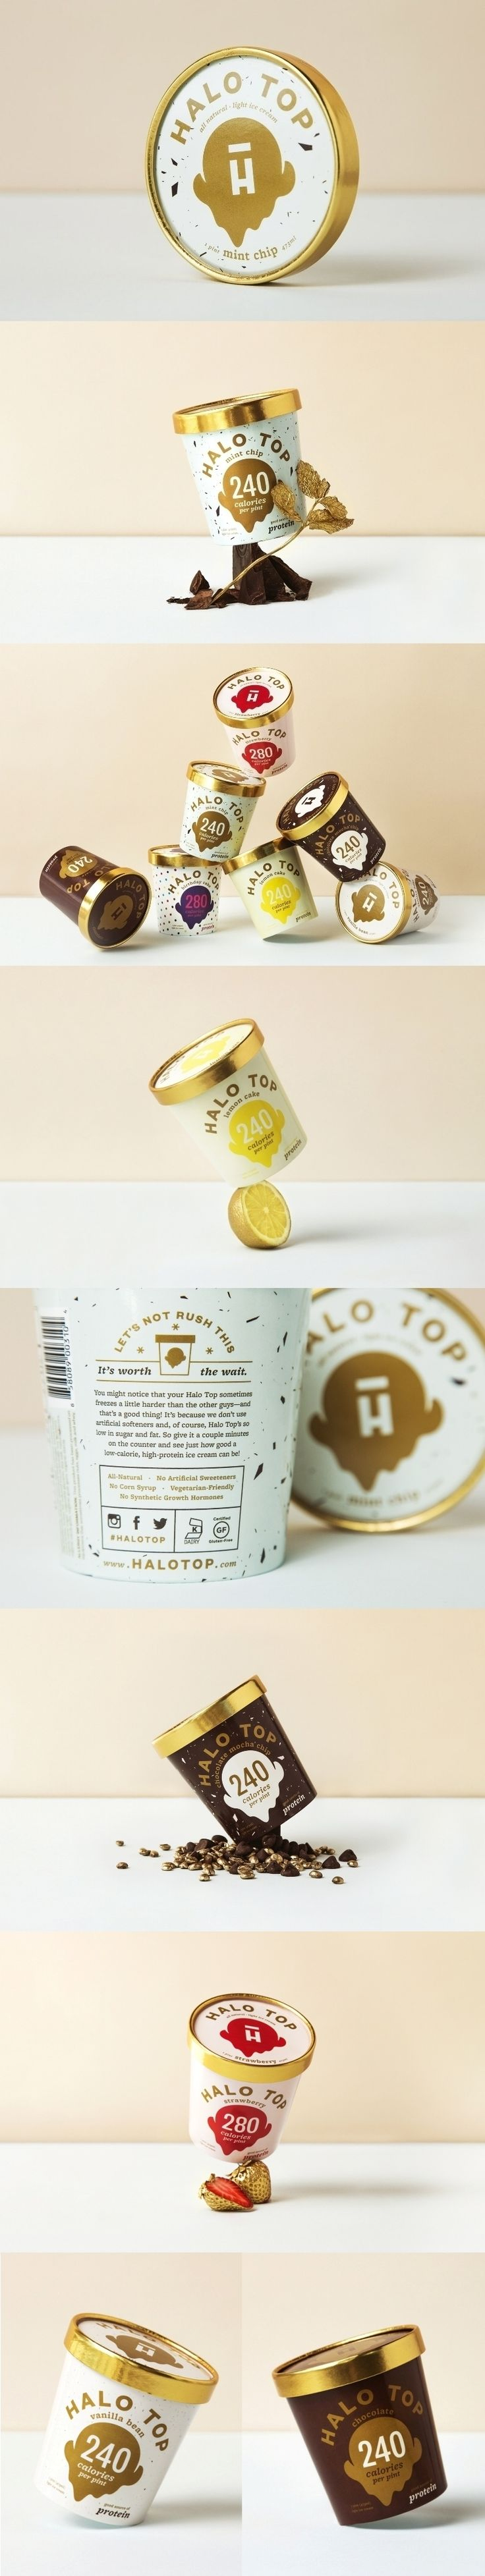 """ I thought there was no way this clould be tasty but I was wrong. So. Good. April 2016"" Halo Top Creamy. Great taste, great health."